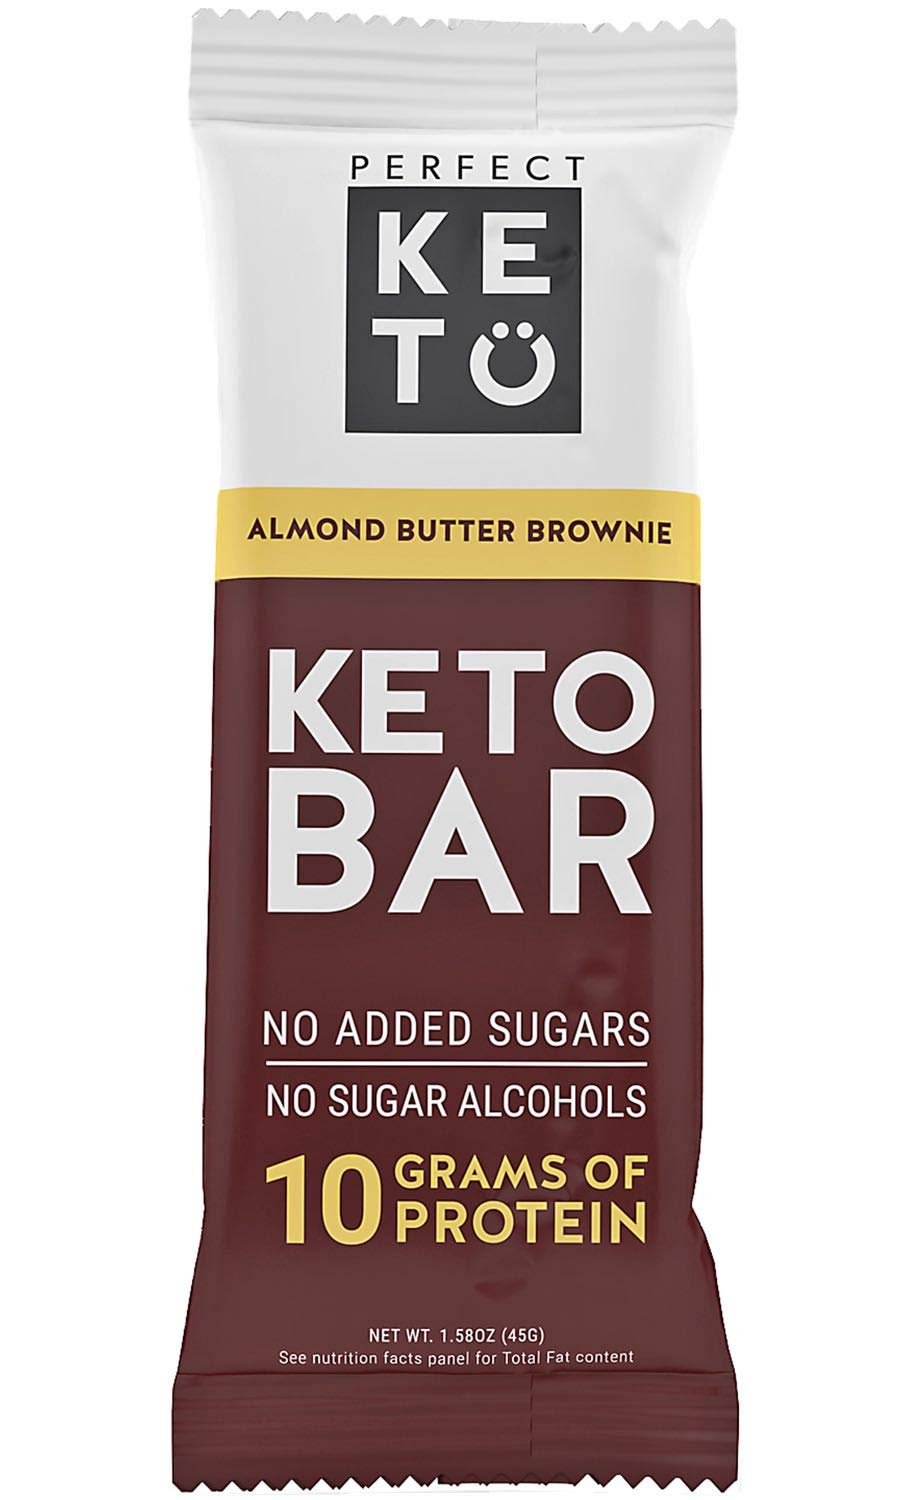 Perfect Keto Bars - The Cleanest Low Carb Keto Snacks with Collagen and MCT. No Sugar, Keto Diet Friendly - 3g Net Carbs, 19g Fat, 10g protein - Keto Diet Food Dessert (Almond Butter Brownie, 12 Bars)